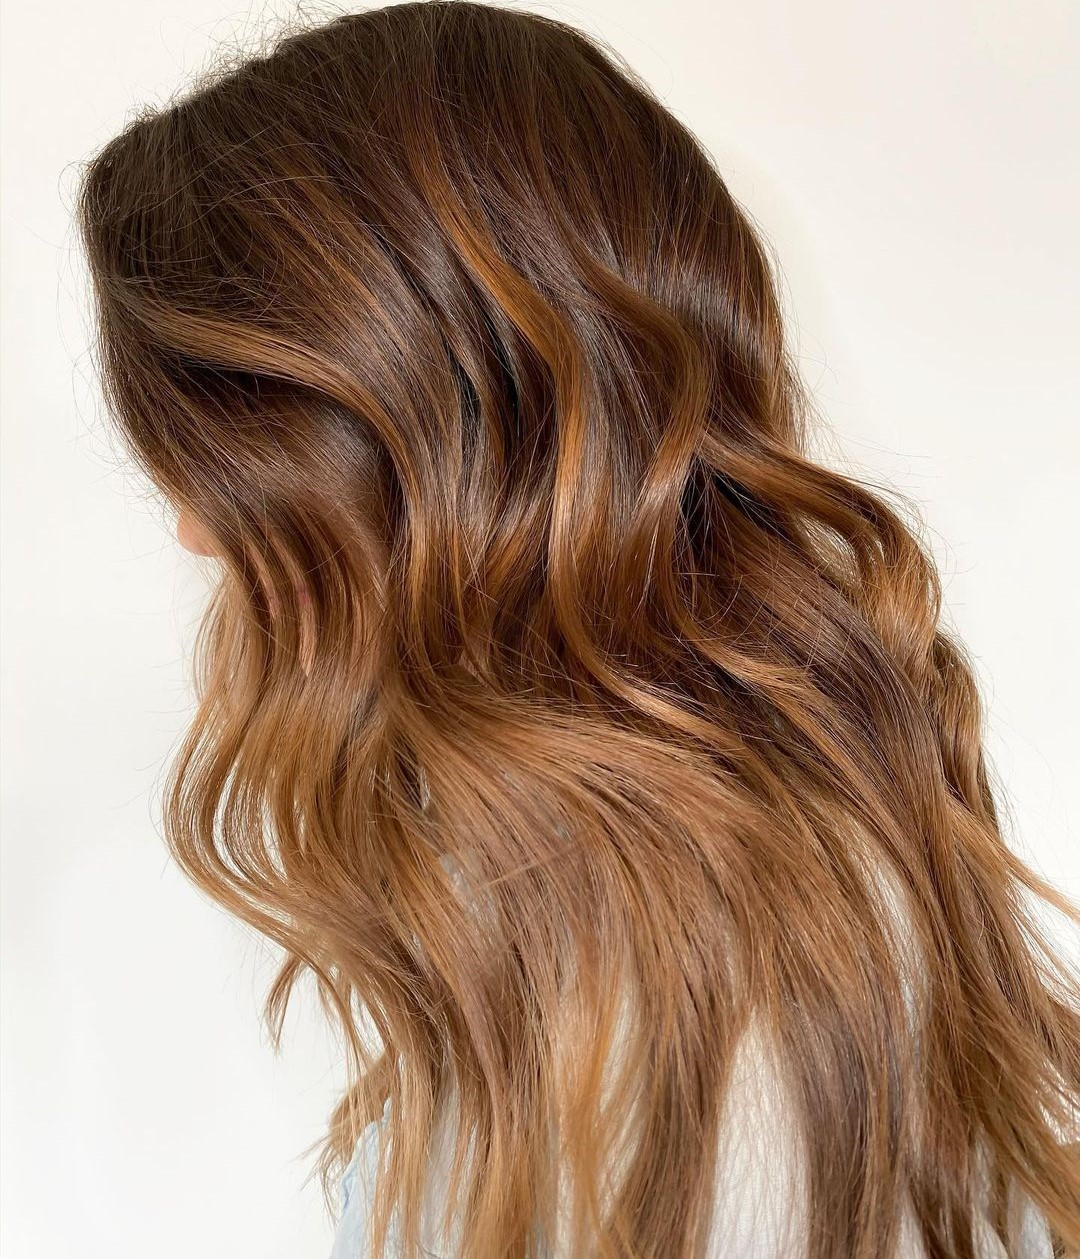 Layered Cut with Copper and Golden Balayage